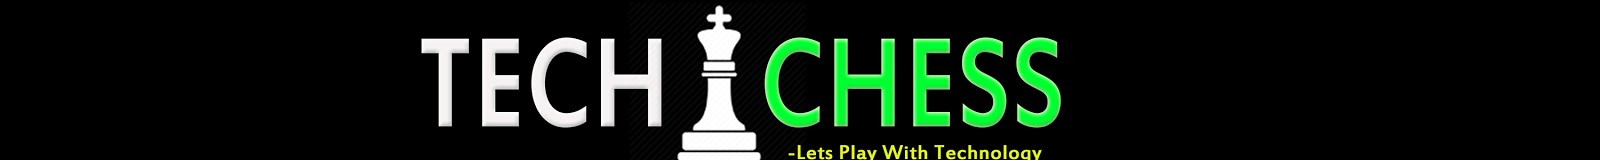 Techchess - Lets play with technology